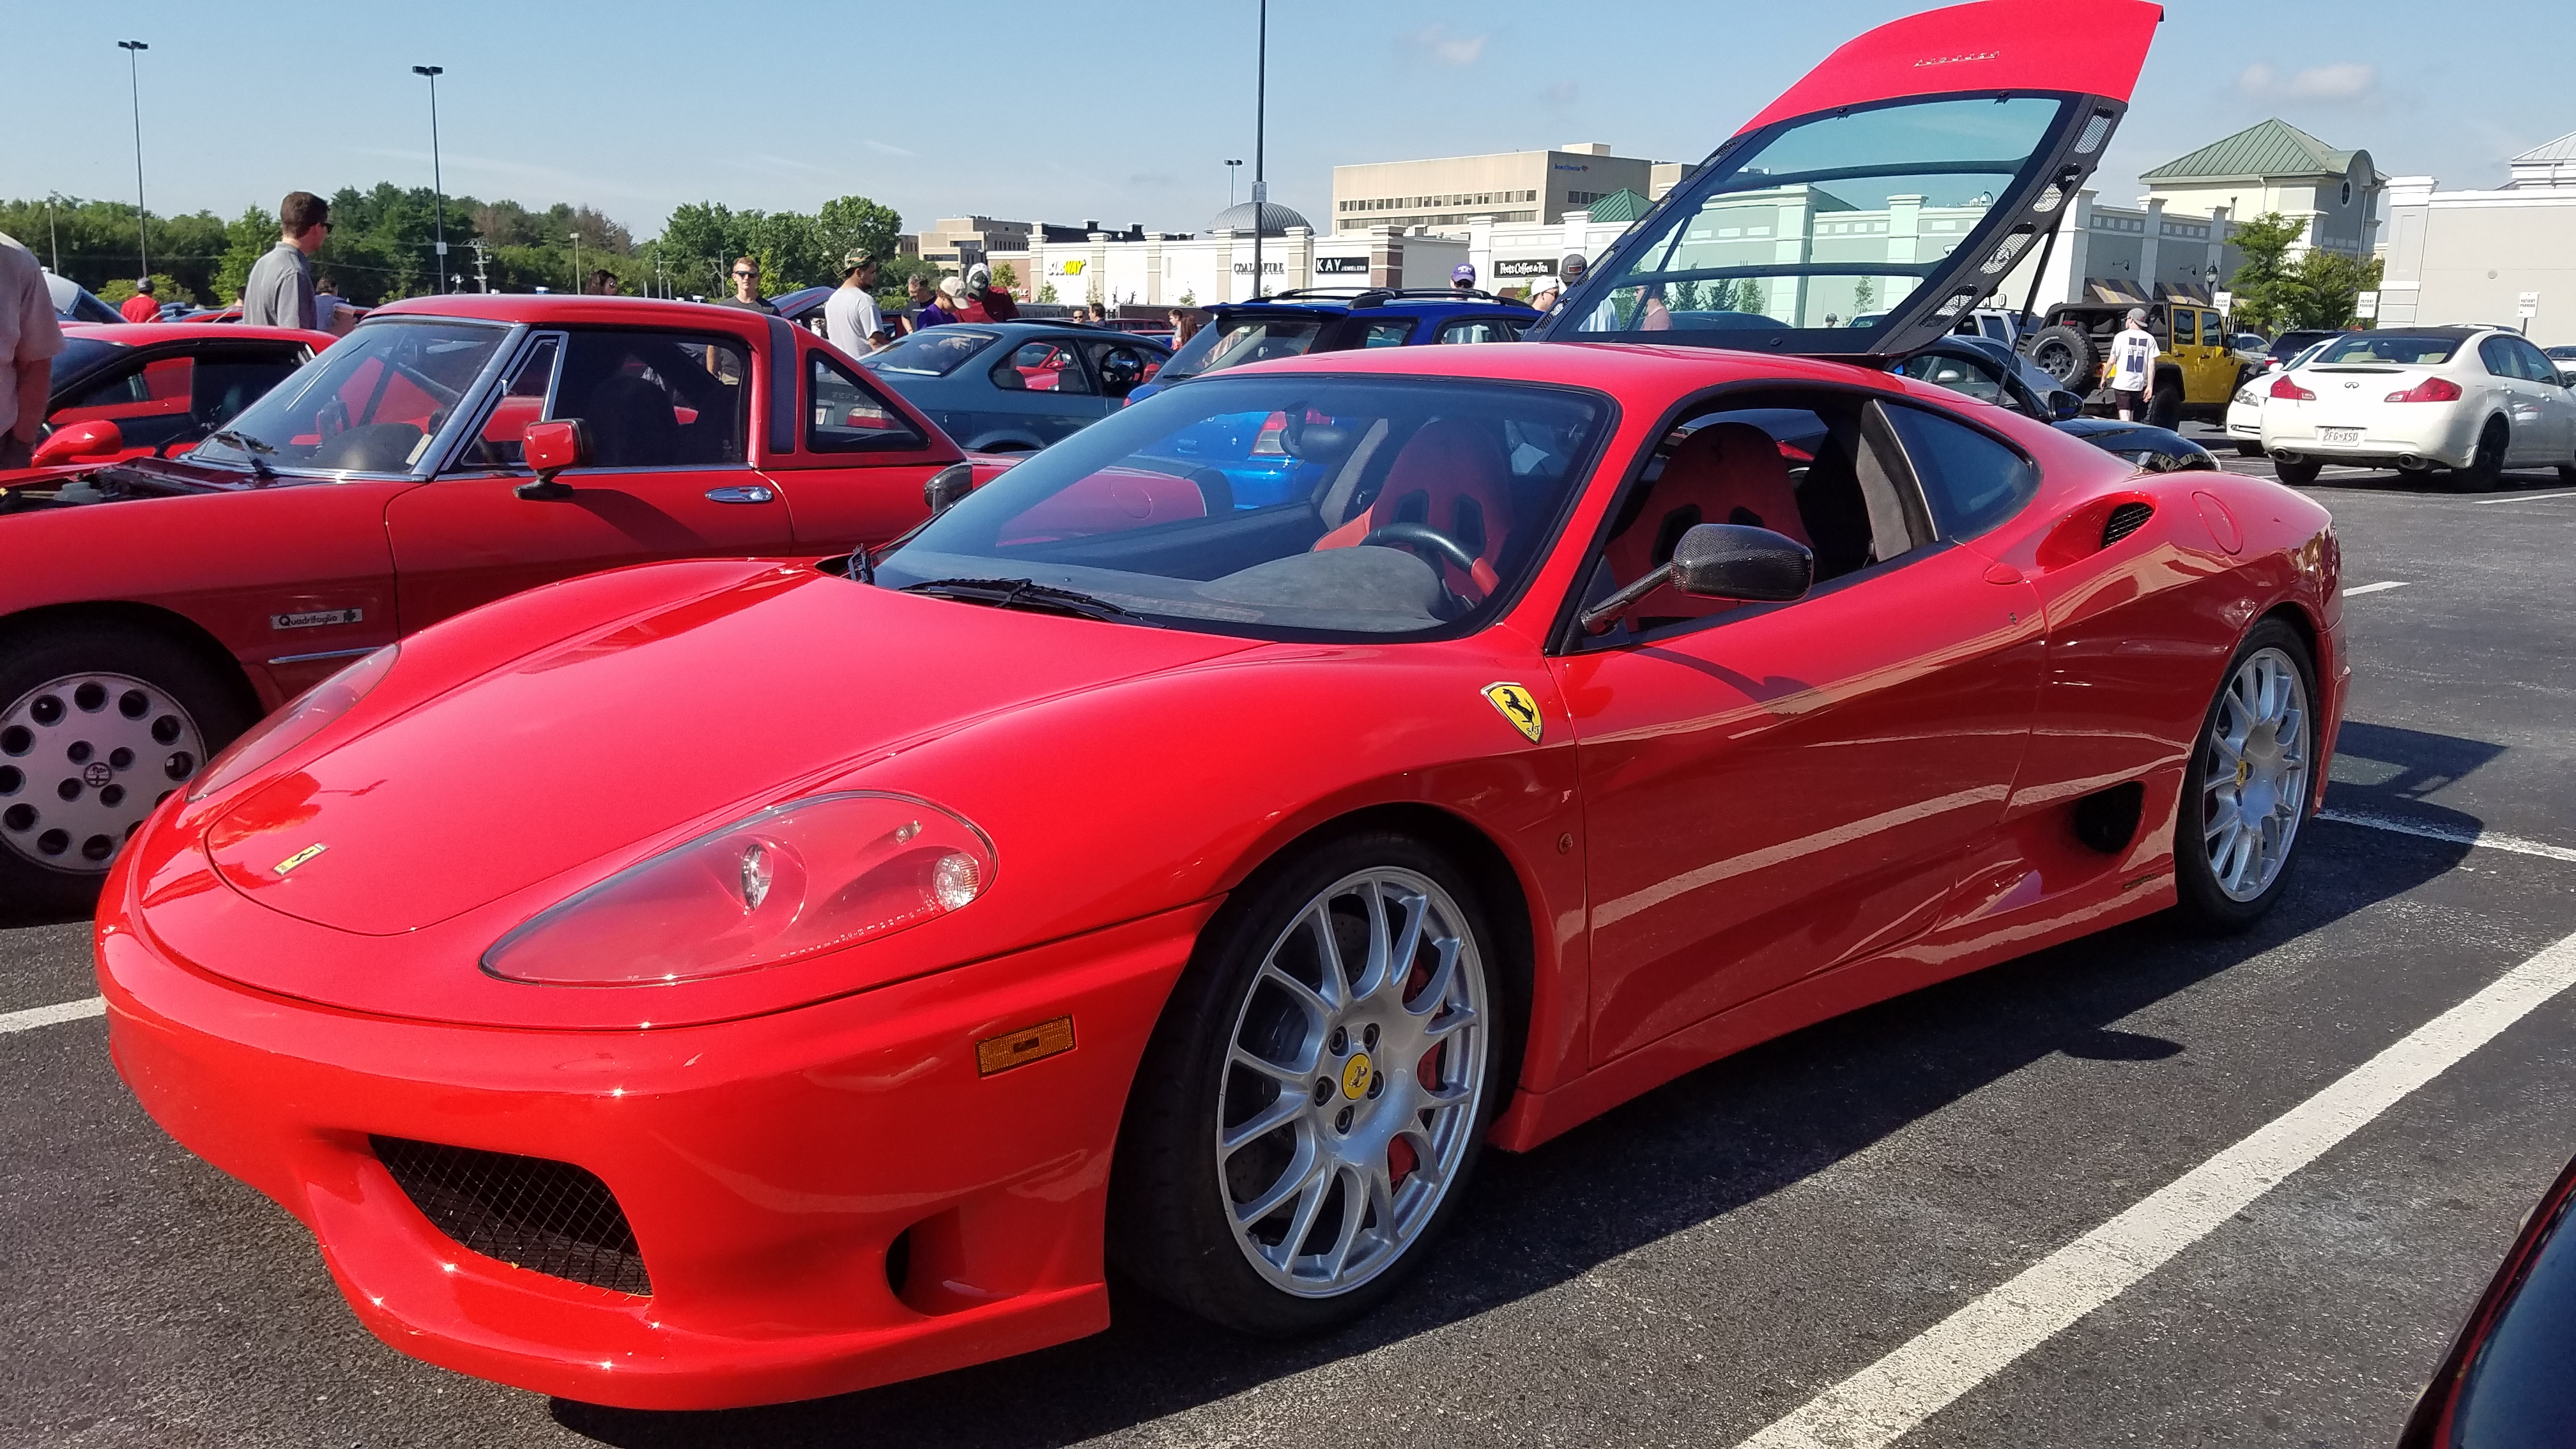 Cccw Ferrari 360 Challenge Stradale Right Foot Down